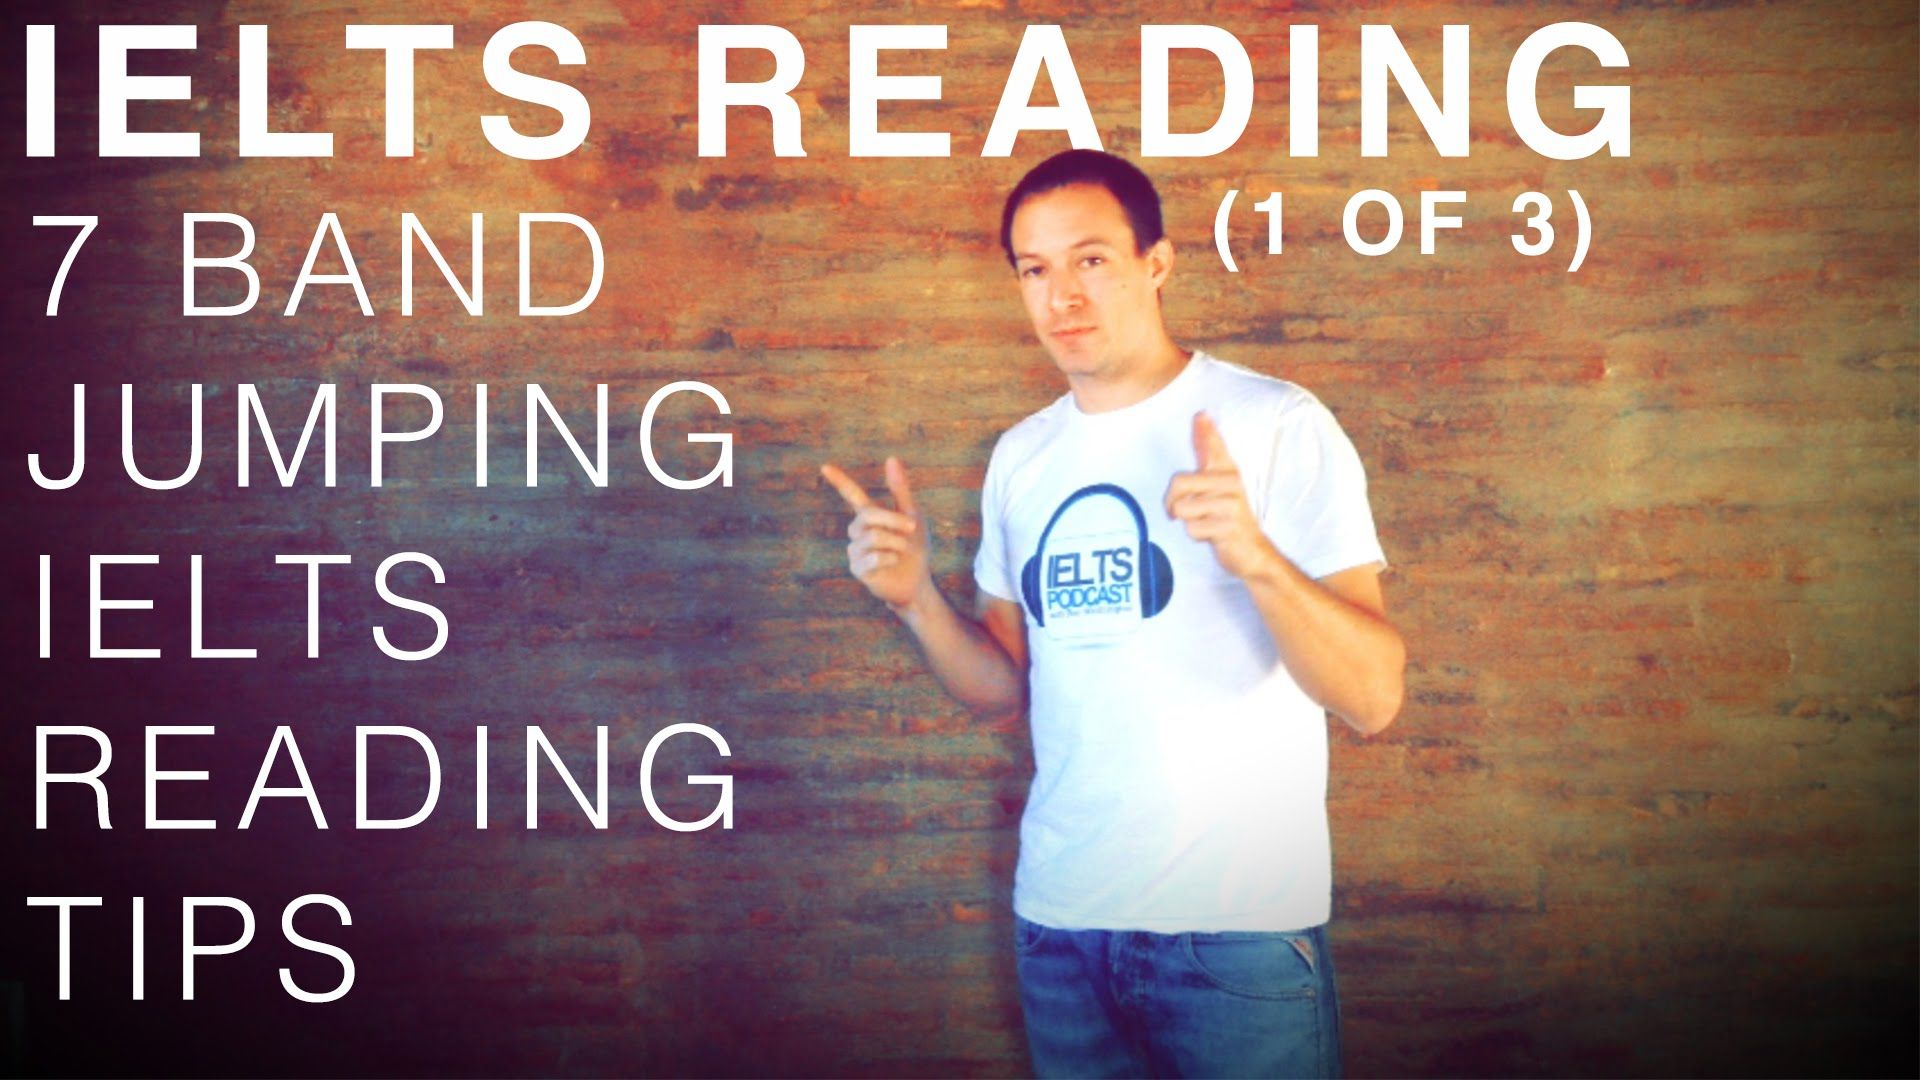 Ielts Reading 7 Band Jumping Ielts Reading Tips 1 Of 3 Ielts Reading Ielts Reading Tips Ielts reading tips for band 7